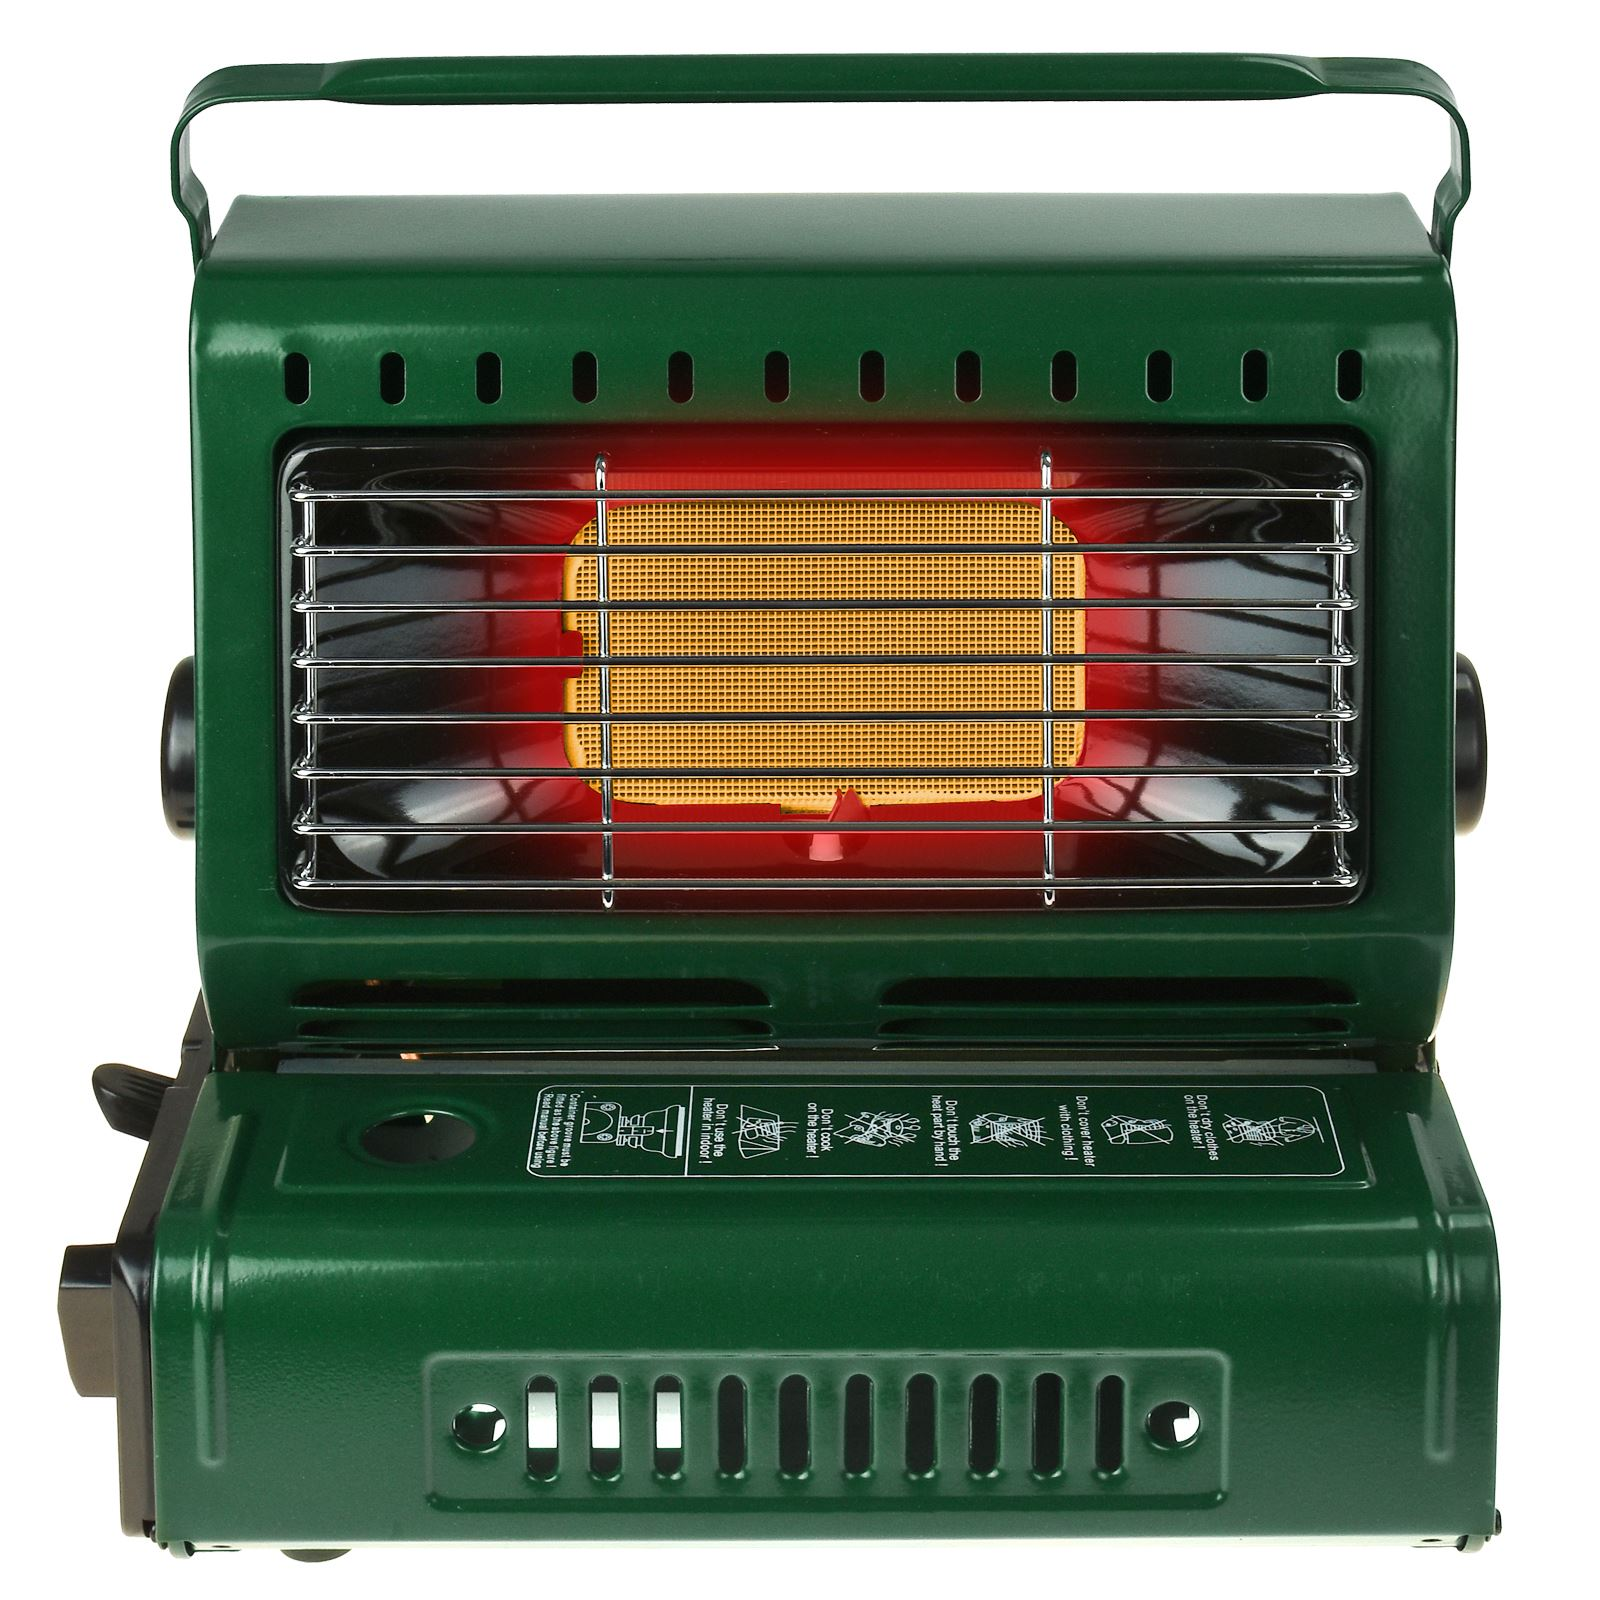 PORTABLE CAMPING GAS Heater Element